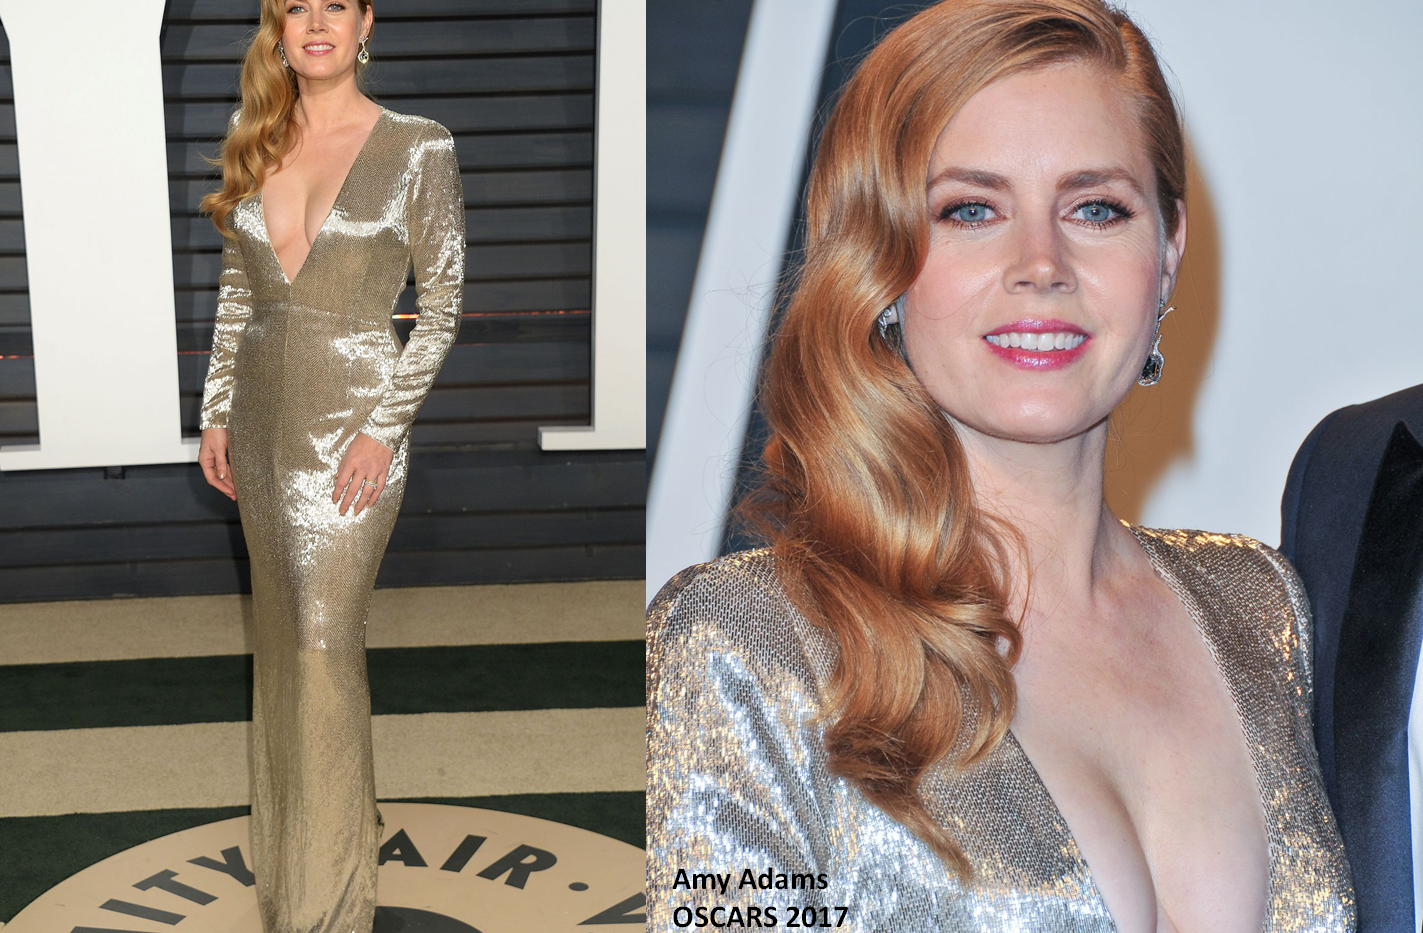 Amy Adams at the Oscars 2017 wearing silver gown - Project for TOM FORD - pattern making using OPTITEX - dressmaking - fitting / tailoring - managing - garment technology consult